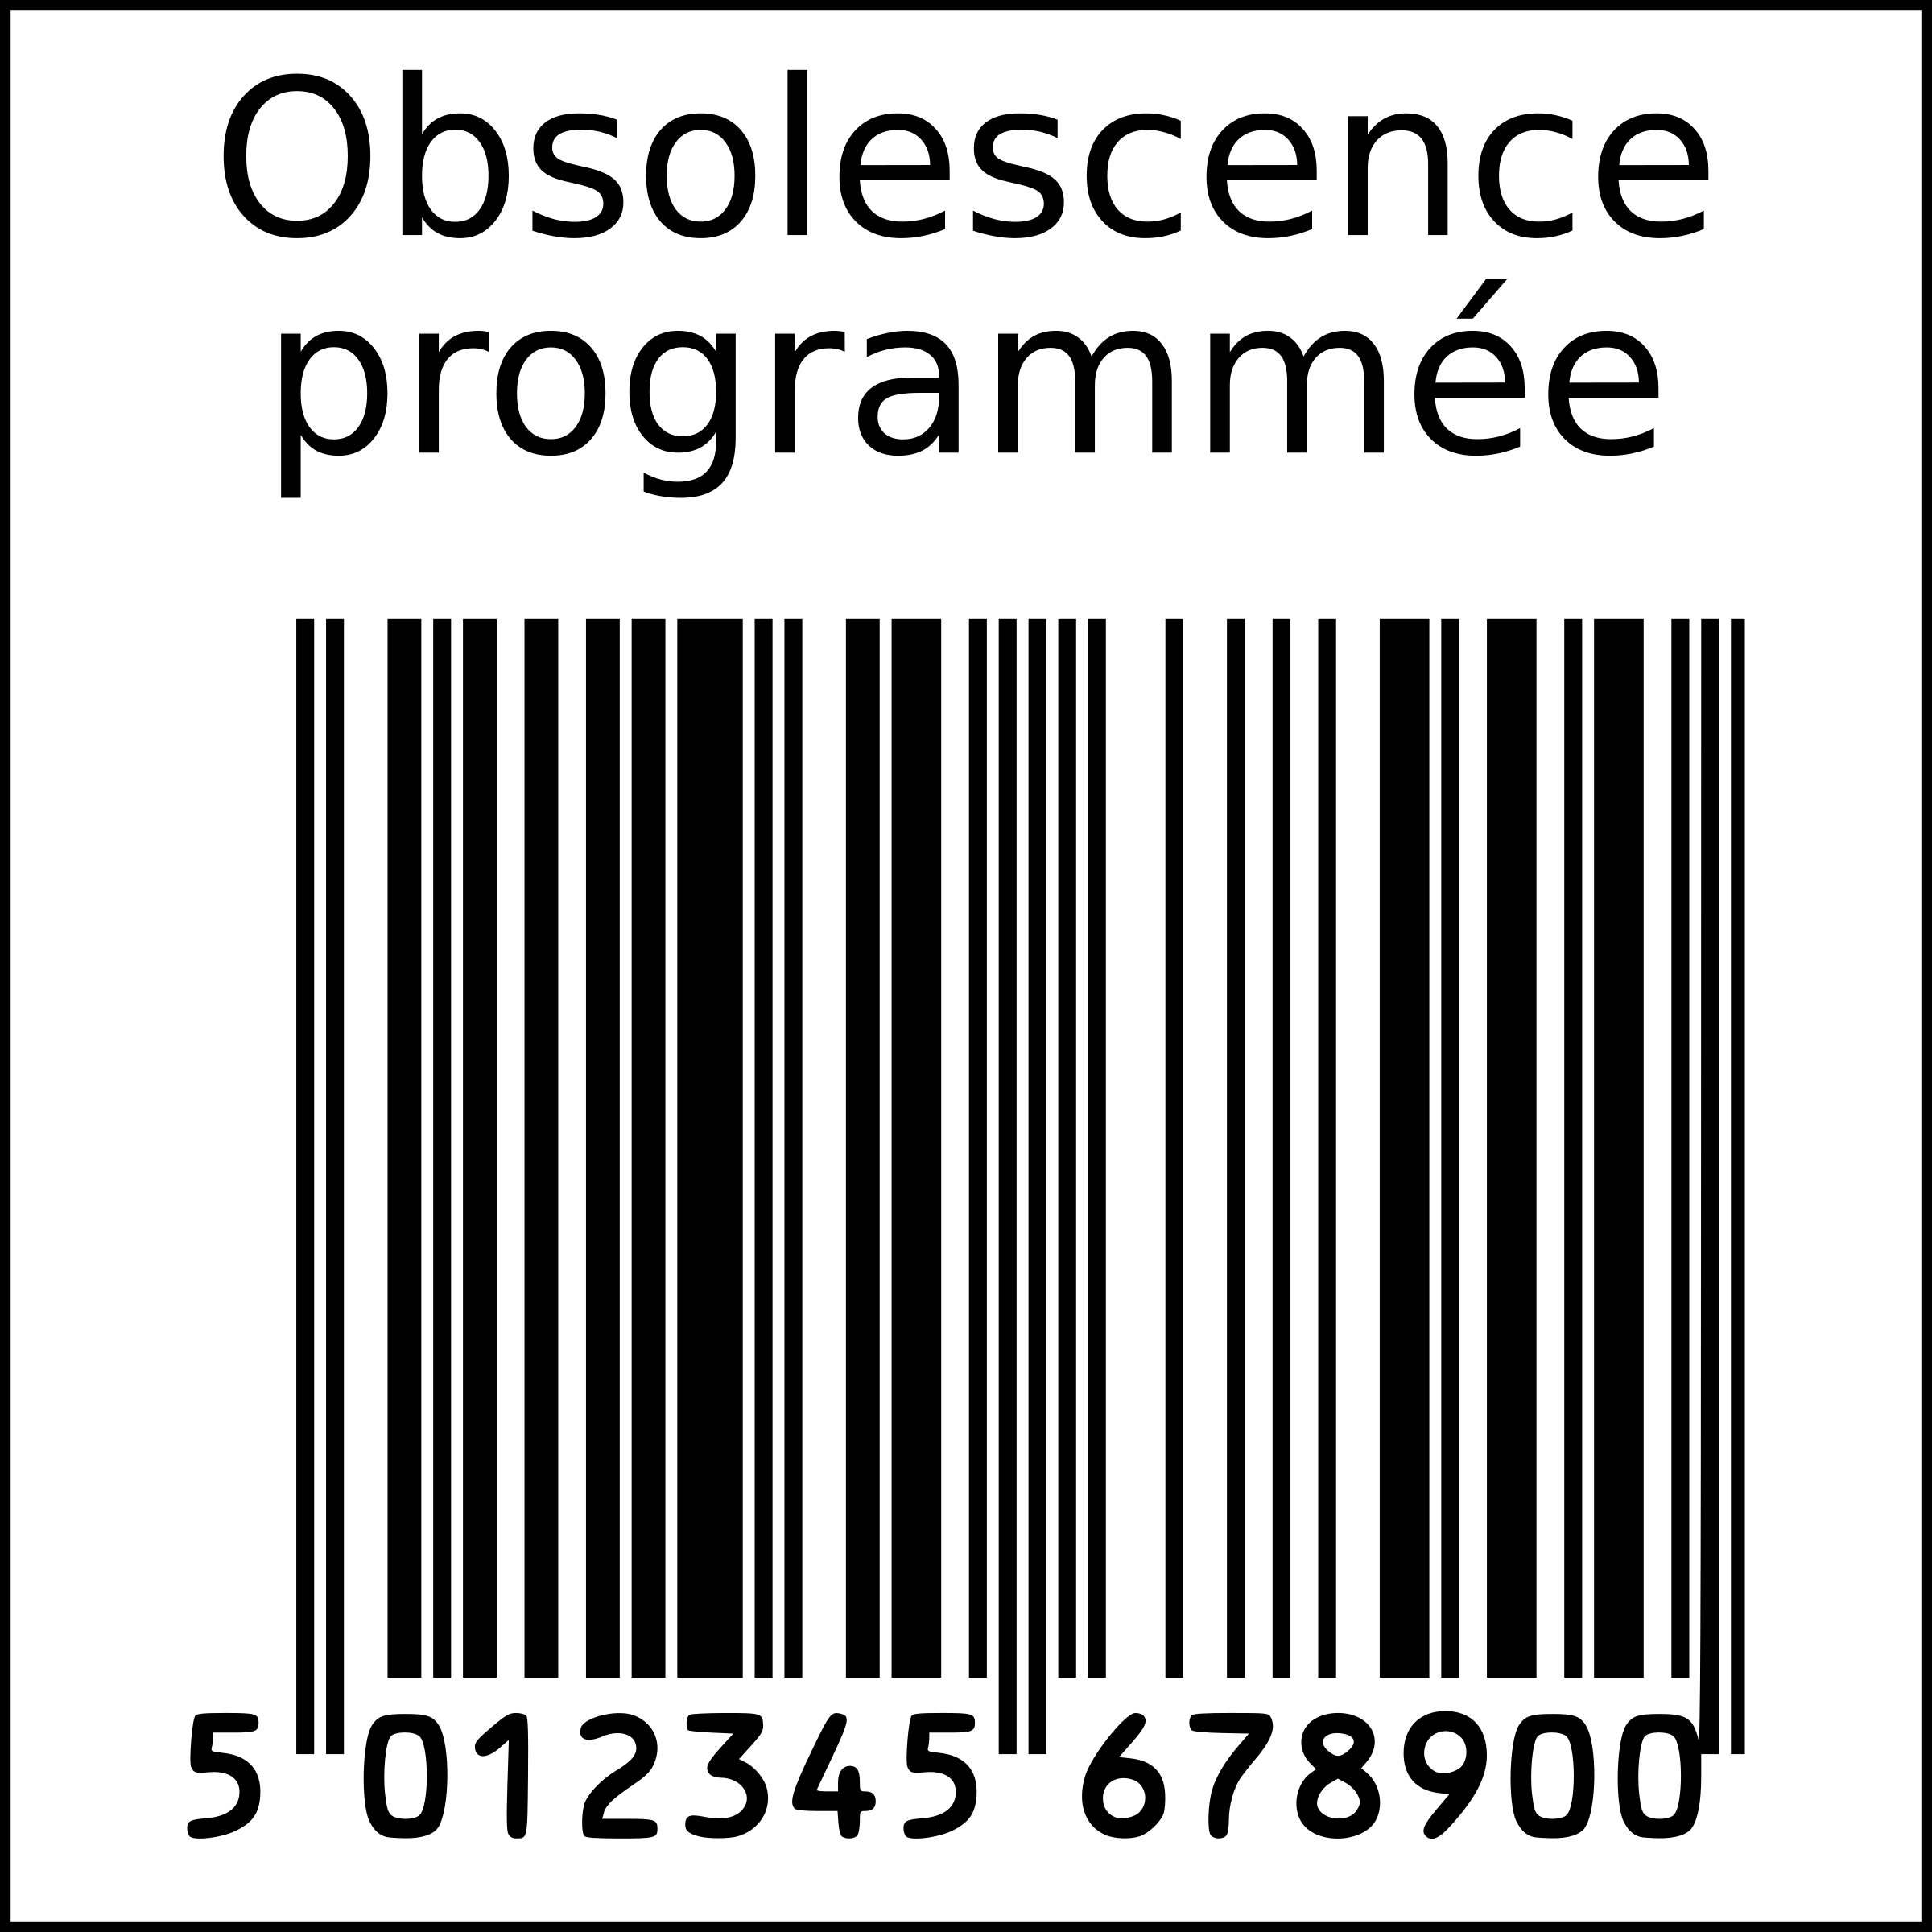 svg free stock Planned obsolescence in squarre. Barcode clipart